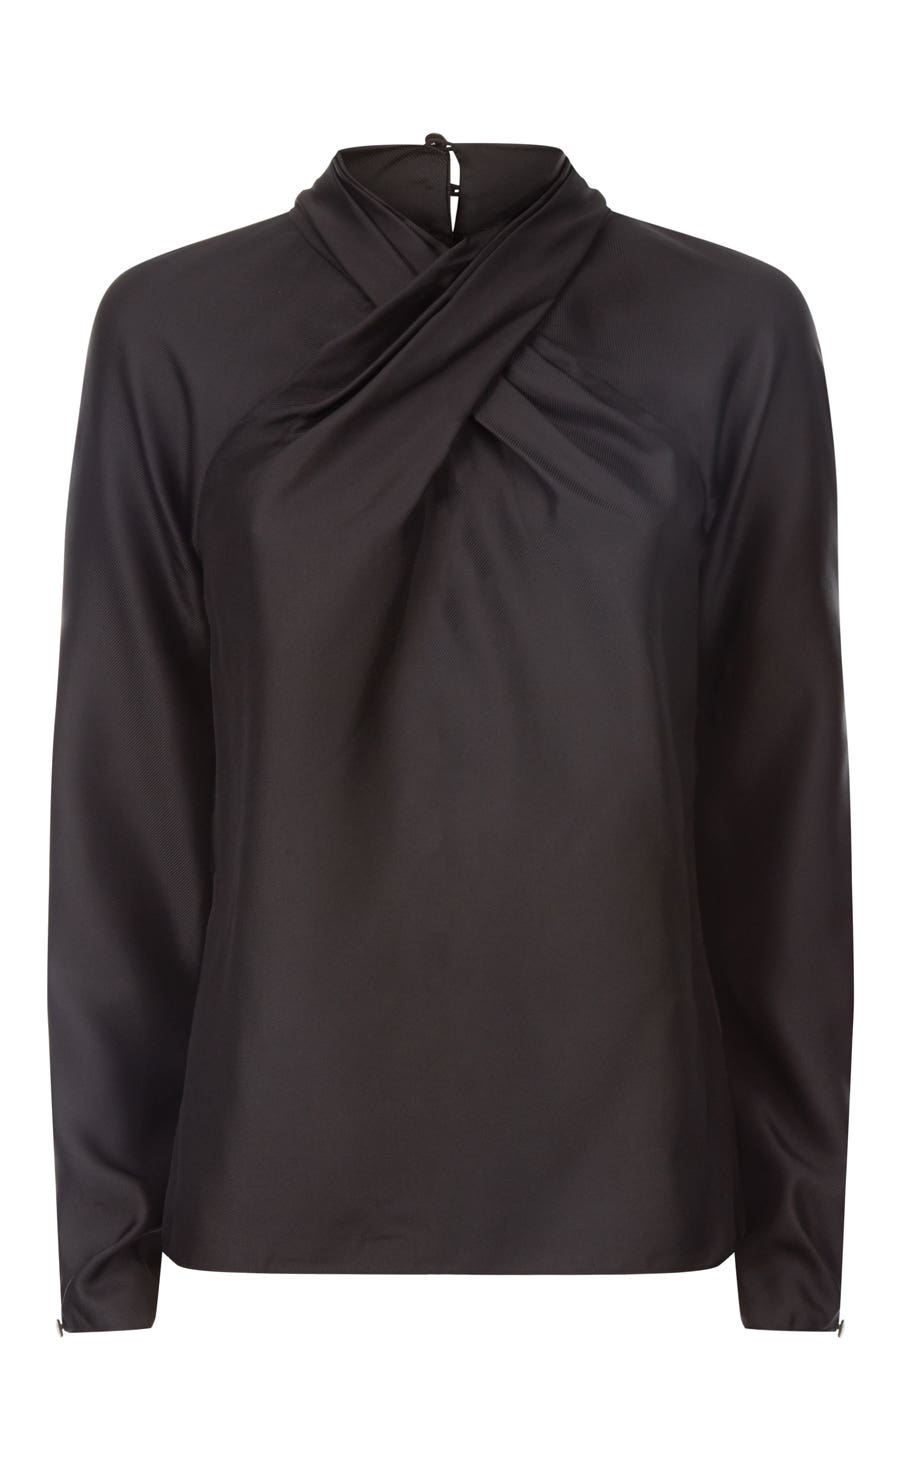 Seabright Blouse, Black